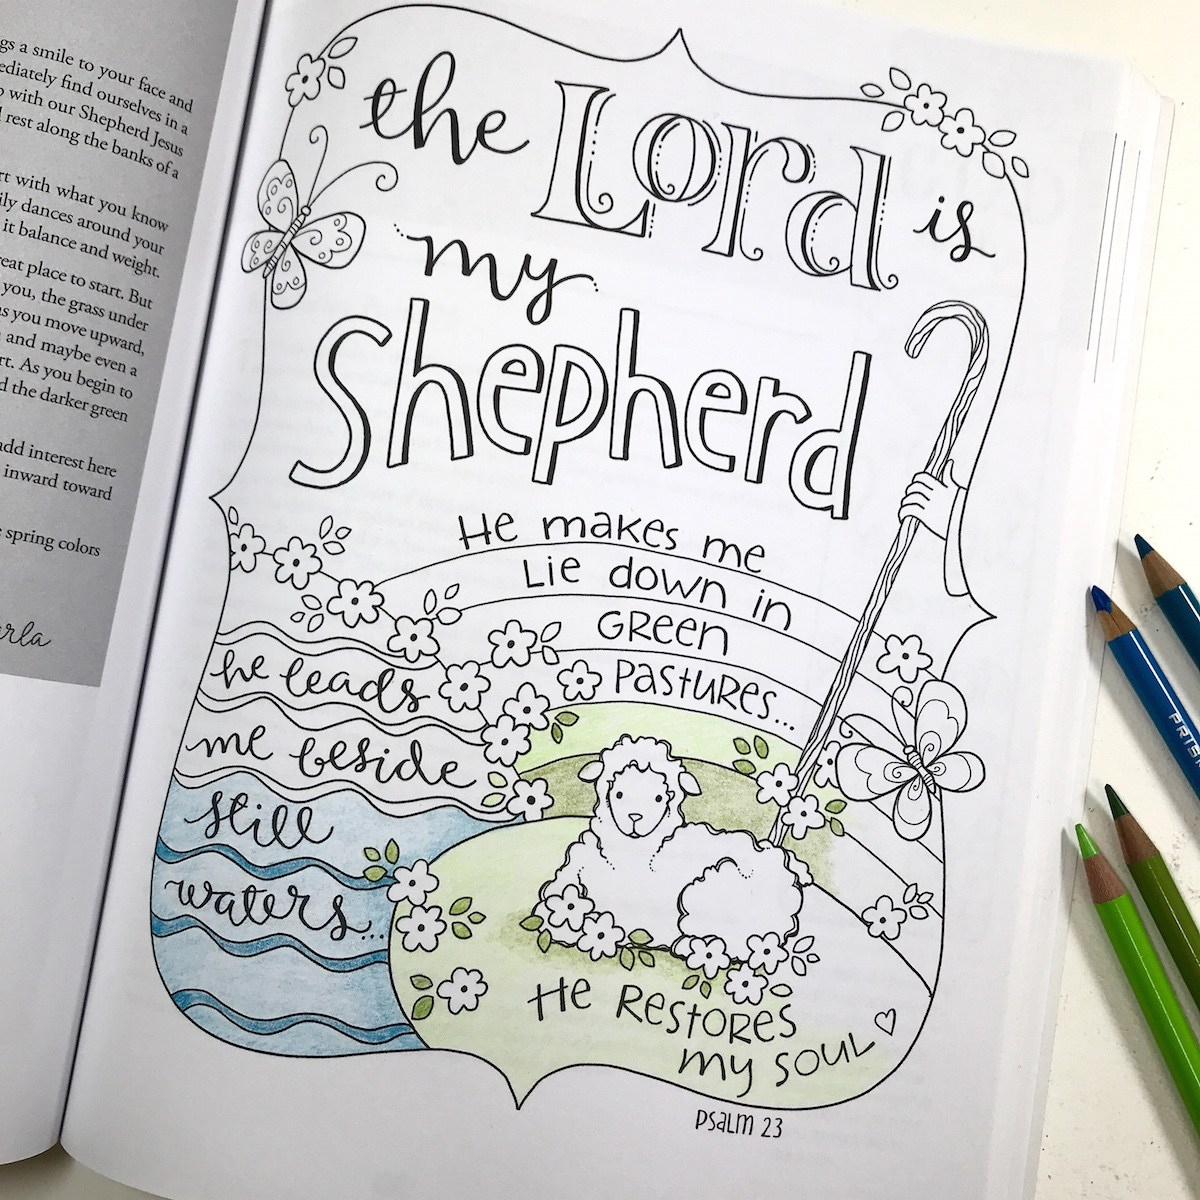 Free clipart 23rd psalm verse 3 coloring pages. The lord is my